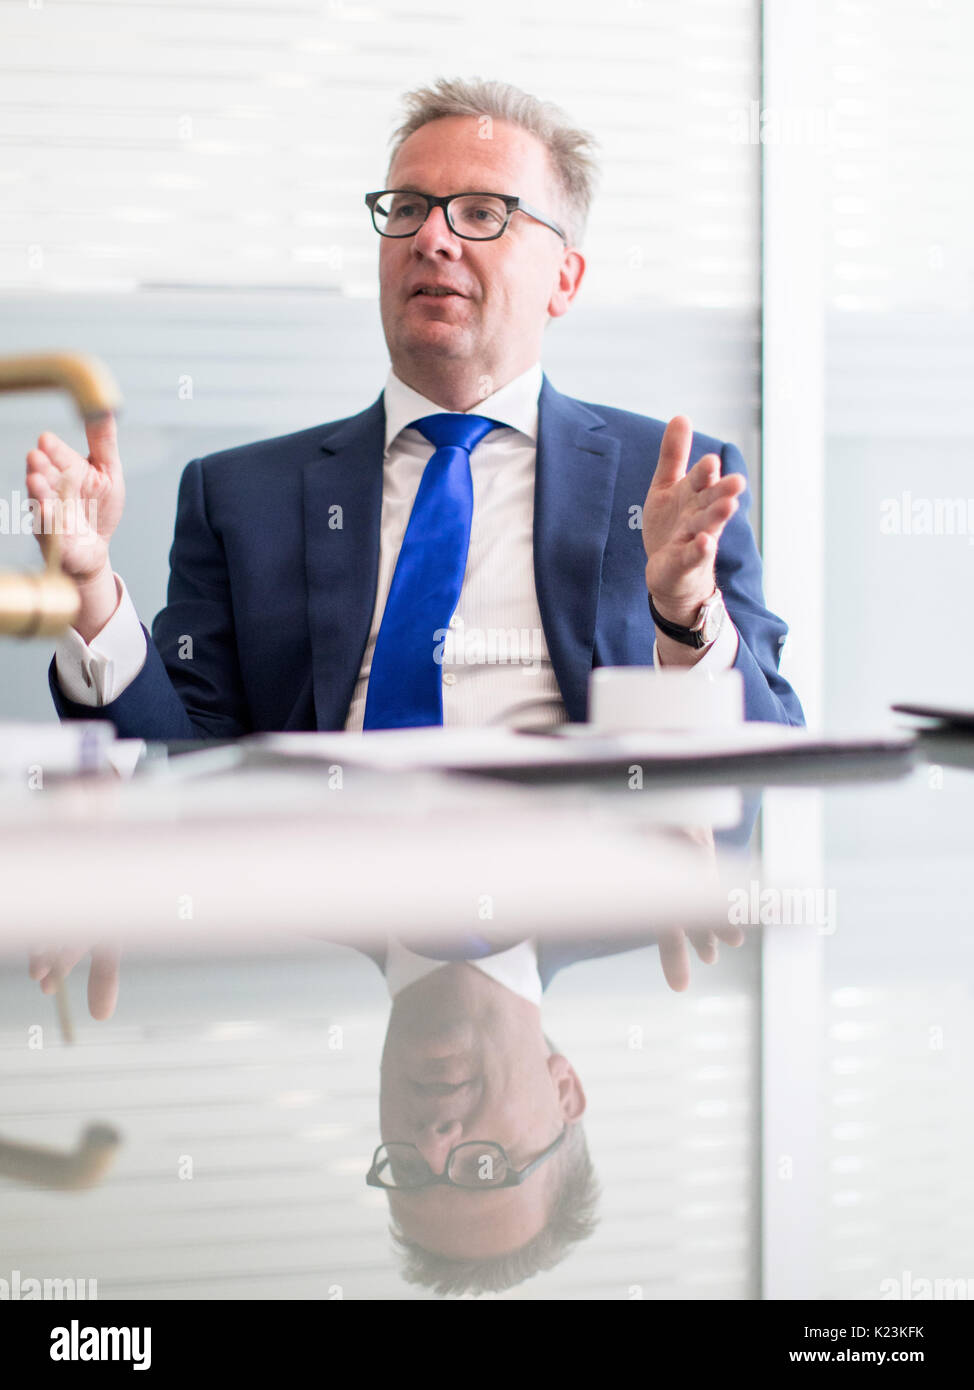 Künstlerisch Grohe Ag Beste Wahl Duesseldorf, Germany. 10th Aug, 2017. The Ceo